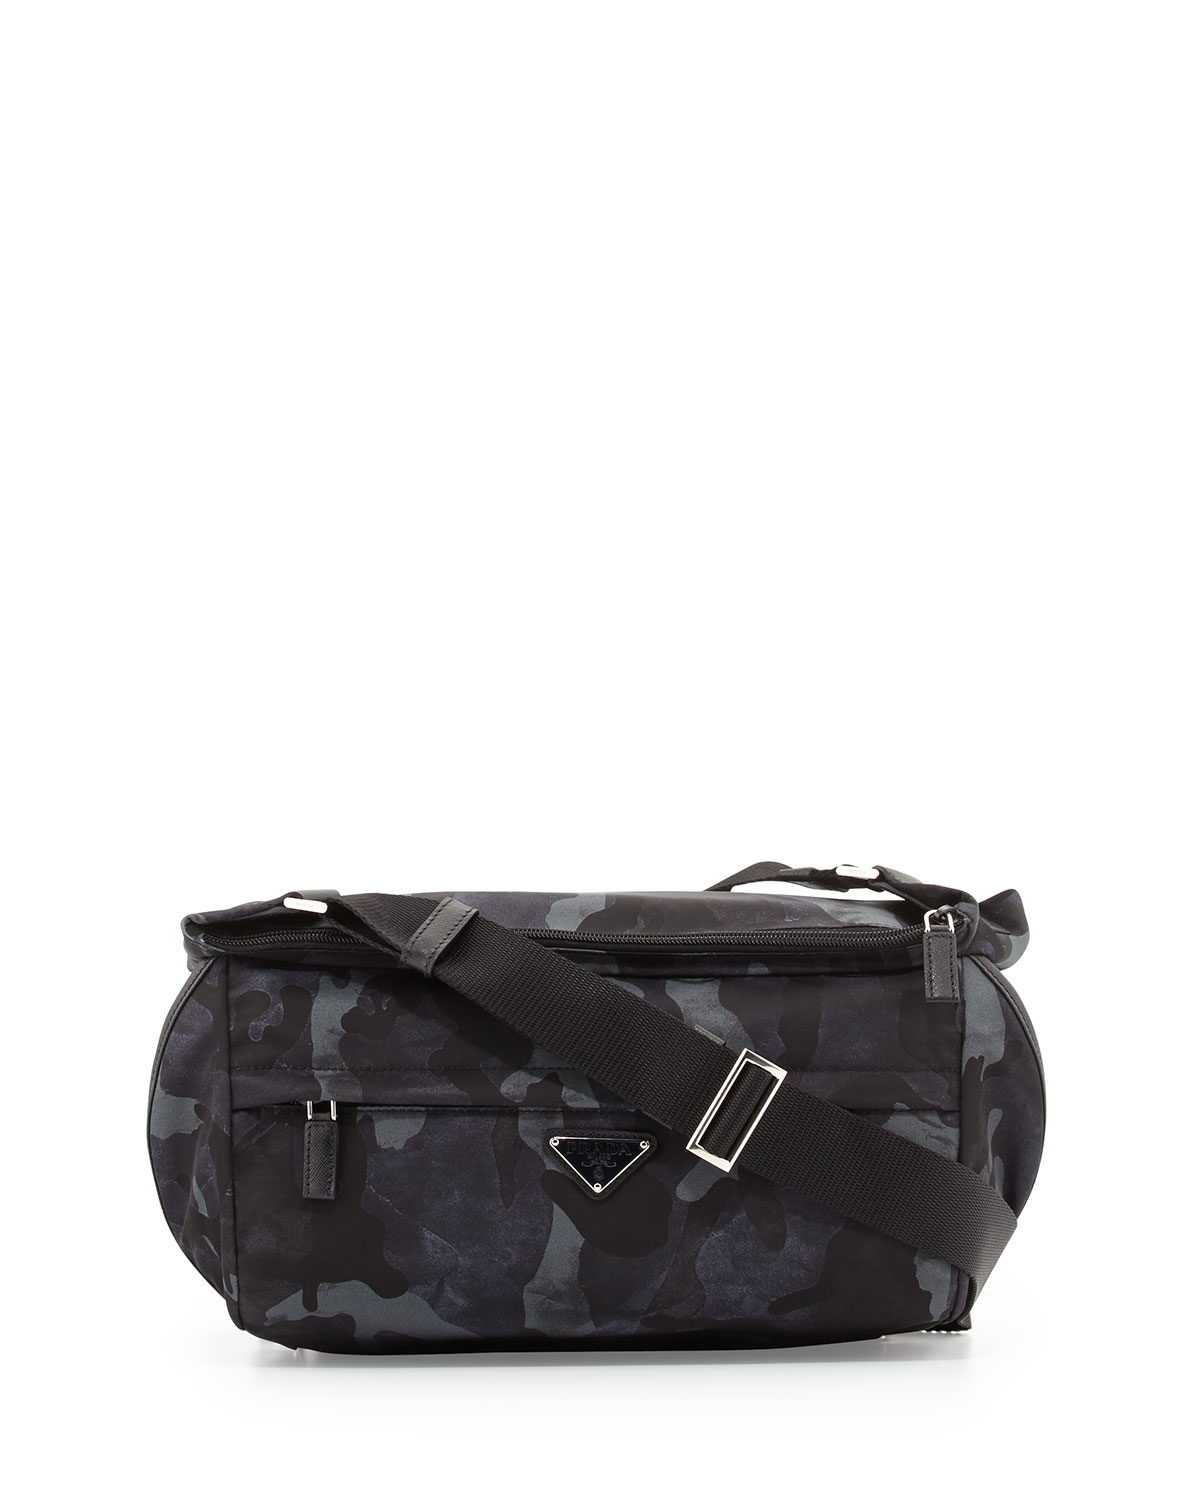 1b83f0c92eb6 Prada Camo Nylon Medium Messenger Bag | Neiman Marcus